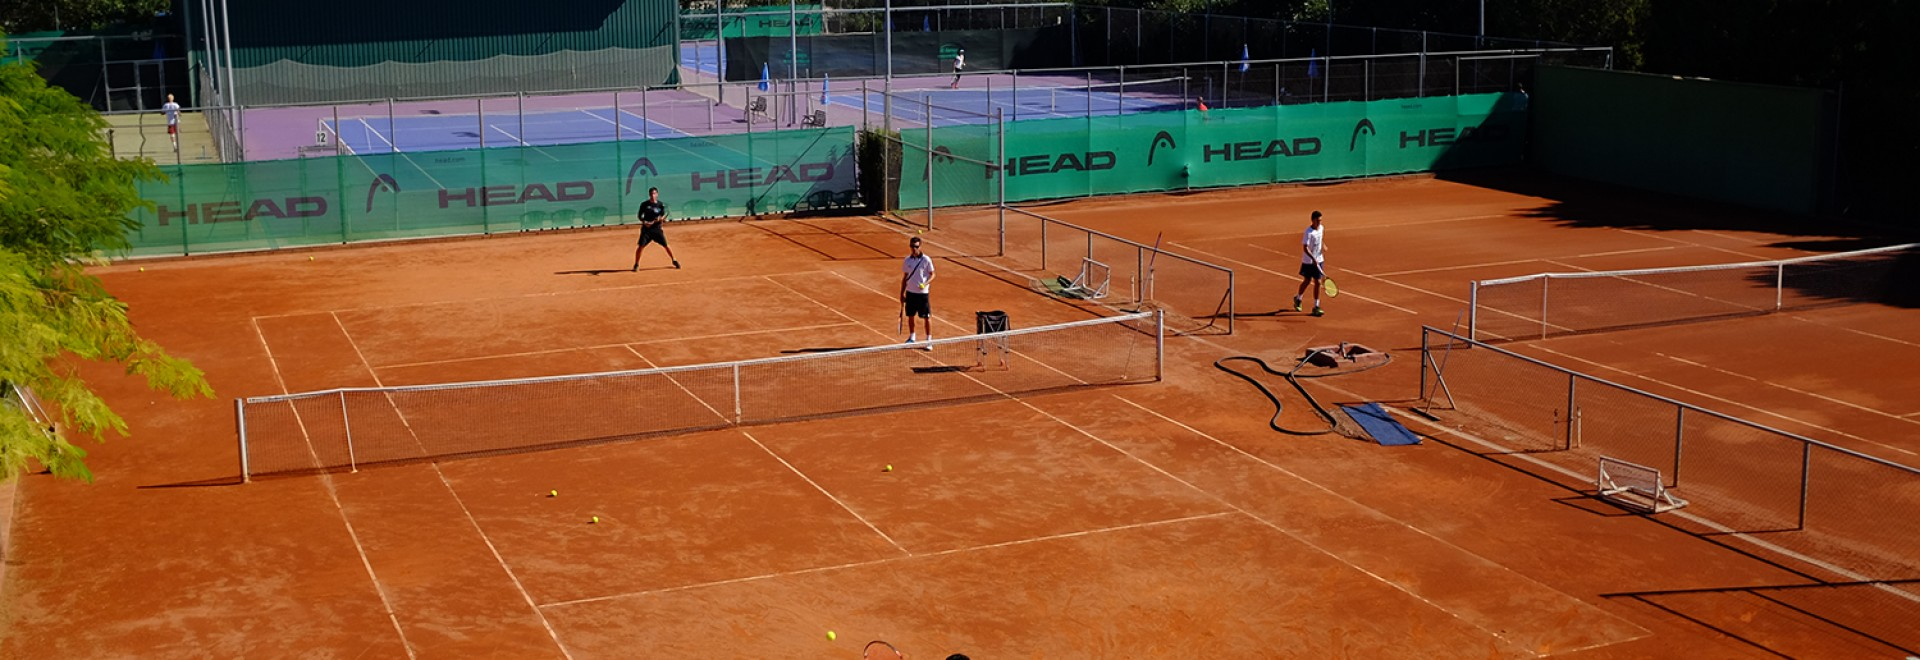 Group/Team Tennis Camp - Juan Carlos Ferrero Equelite Tennis Academy, Alicante